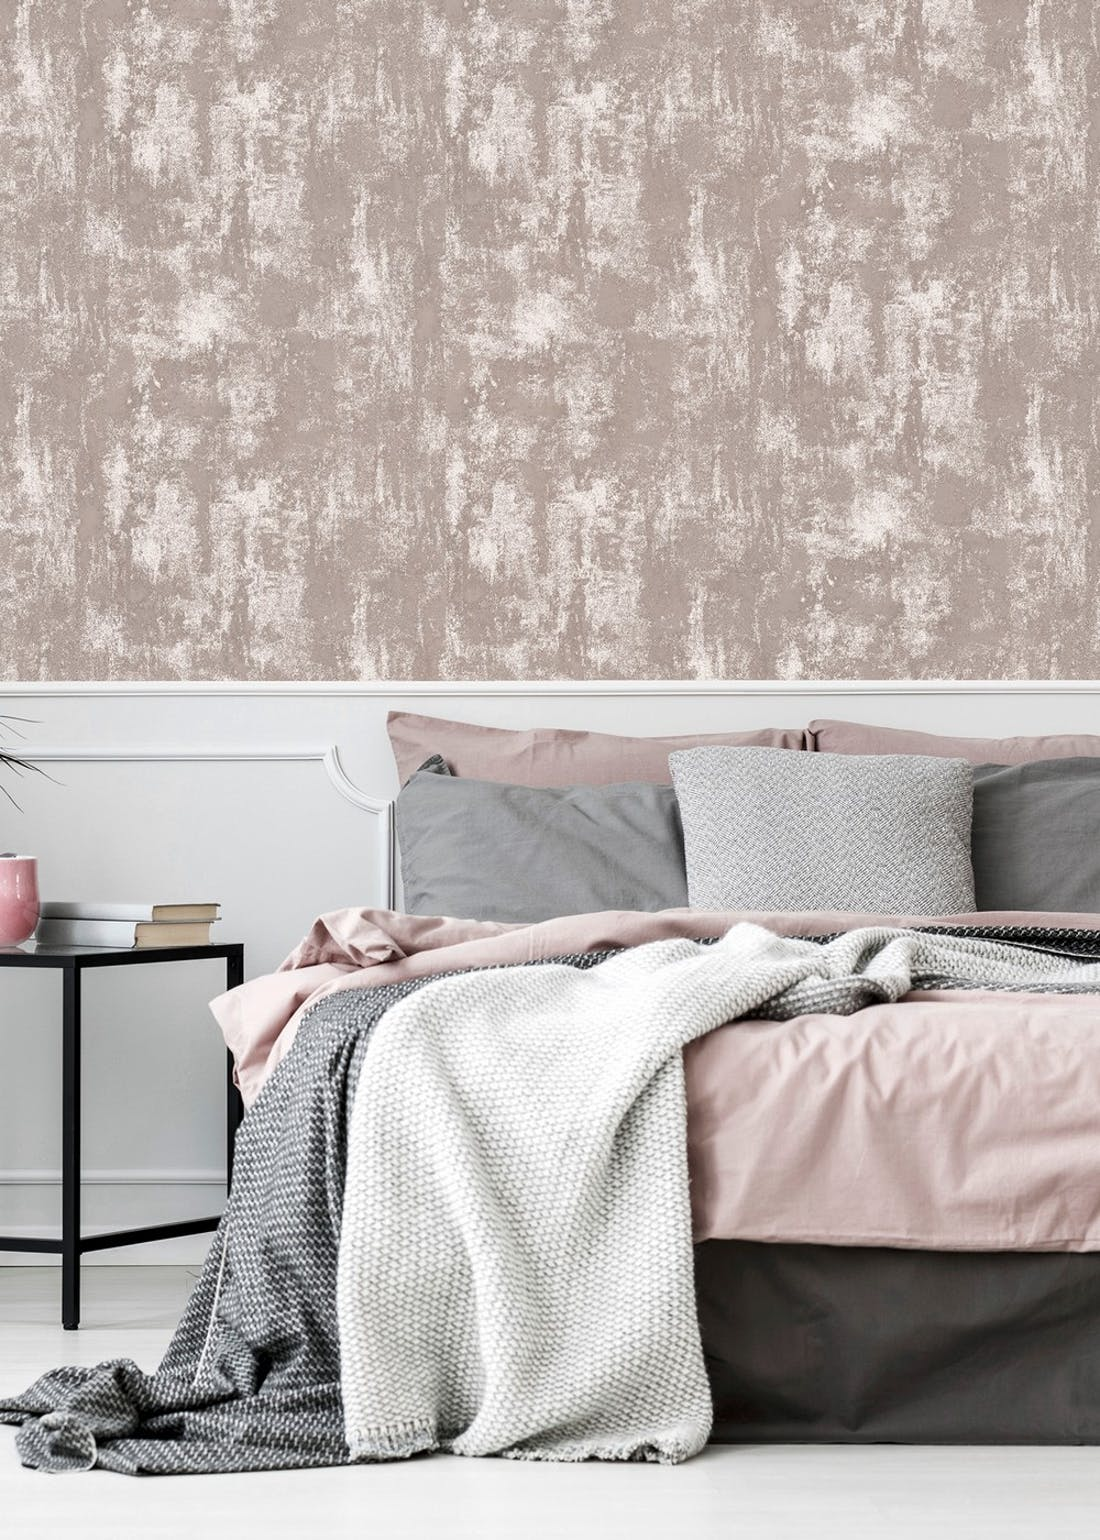 Arthouse Blush Textured Stone Wallpaper (10.05m x 53cm)